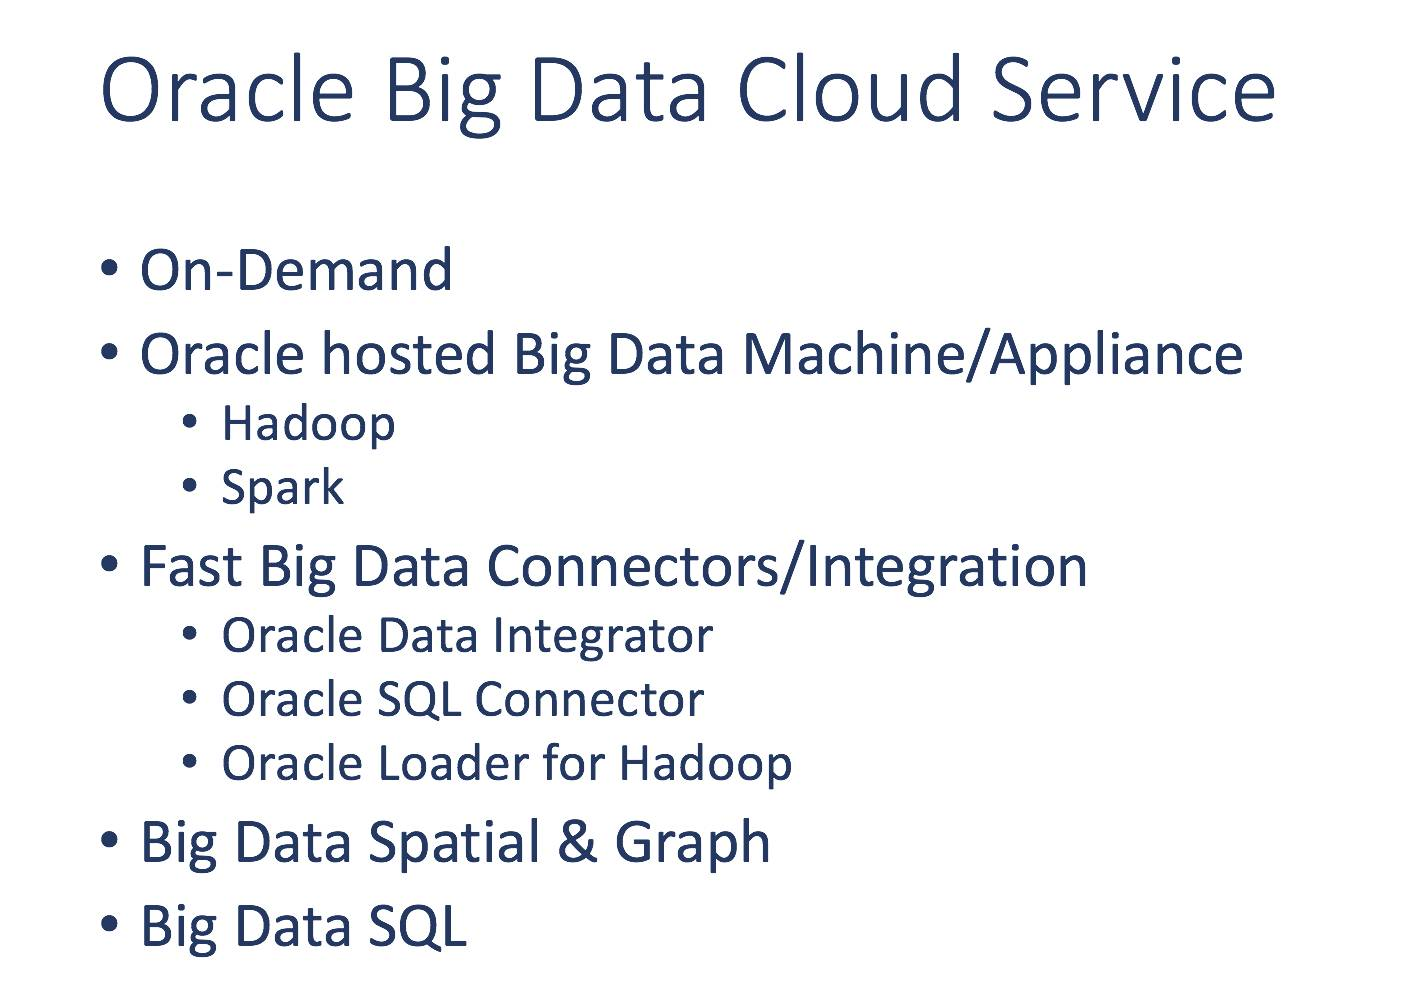 Oracle Big Data Cloud